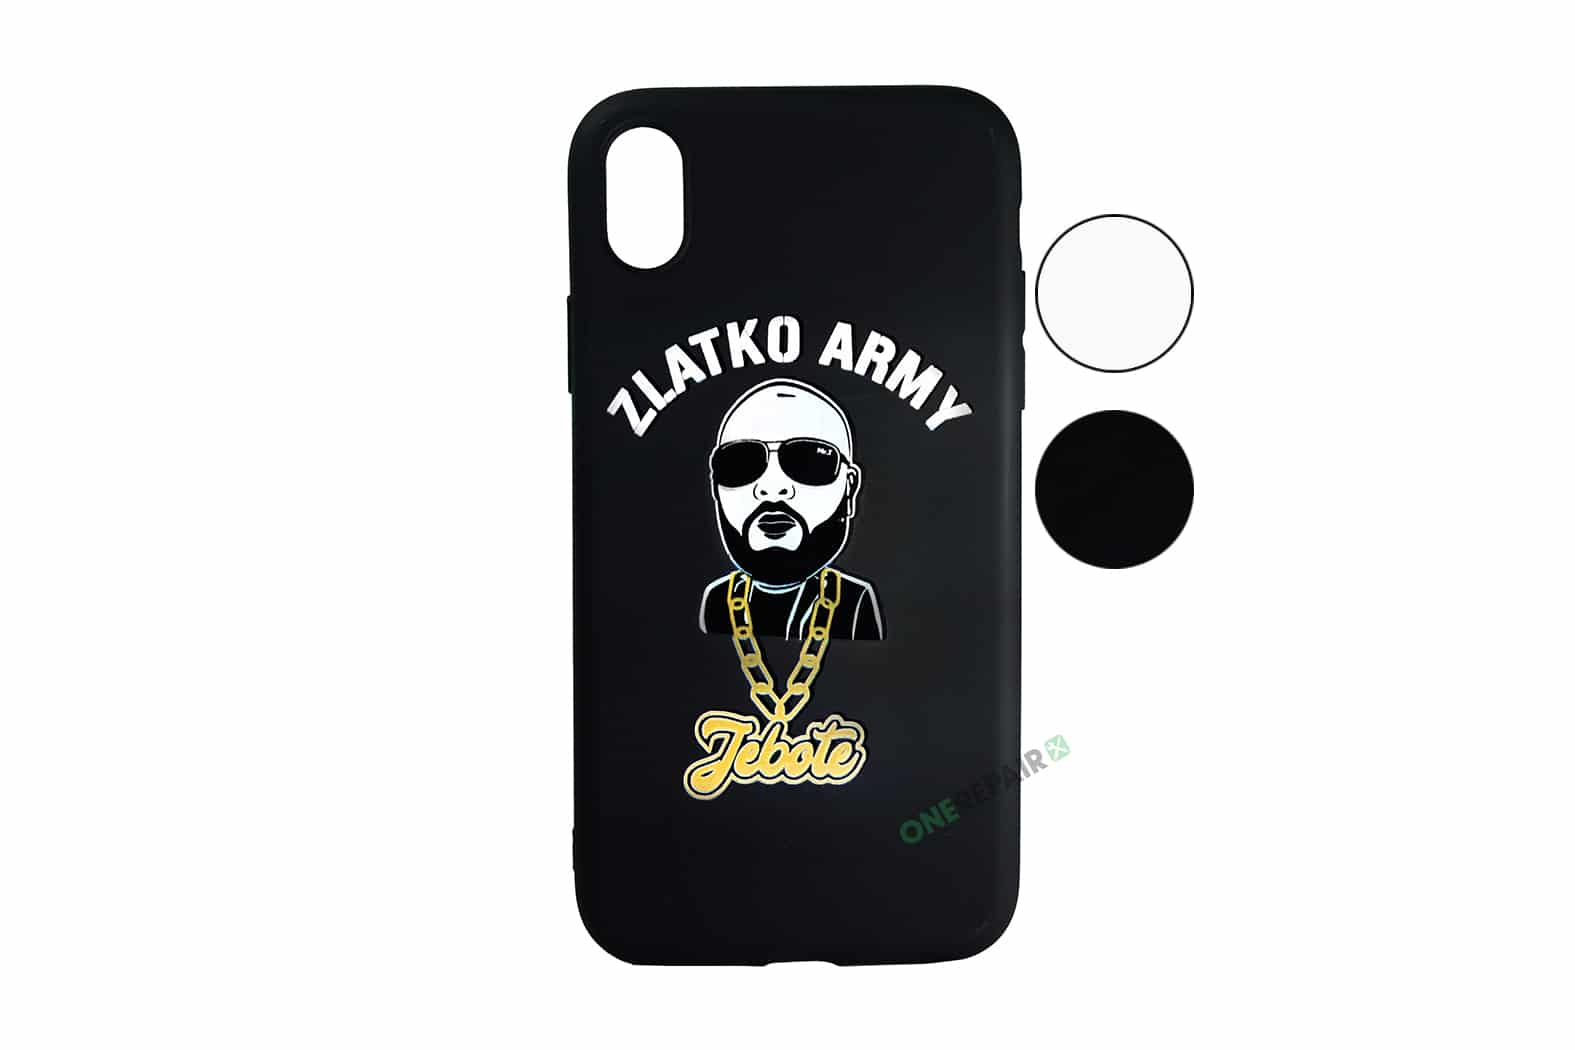 Zlatko Army cover til iPhone XR